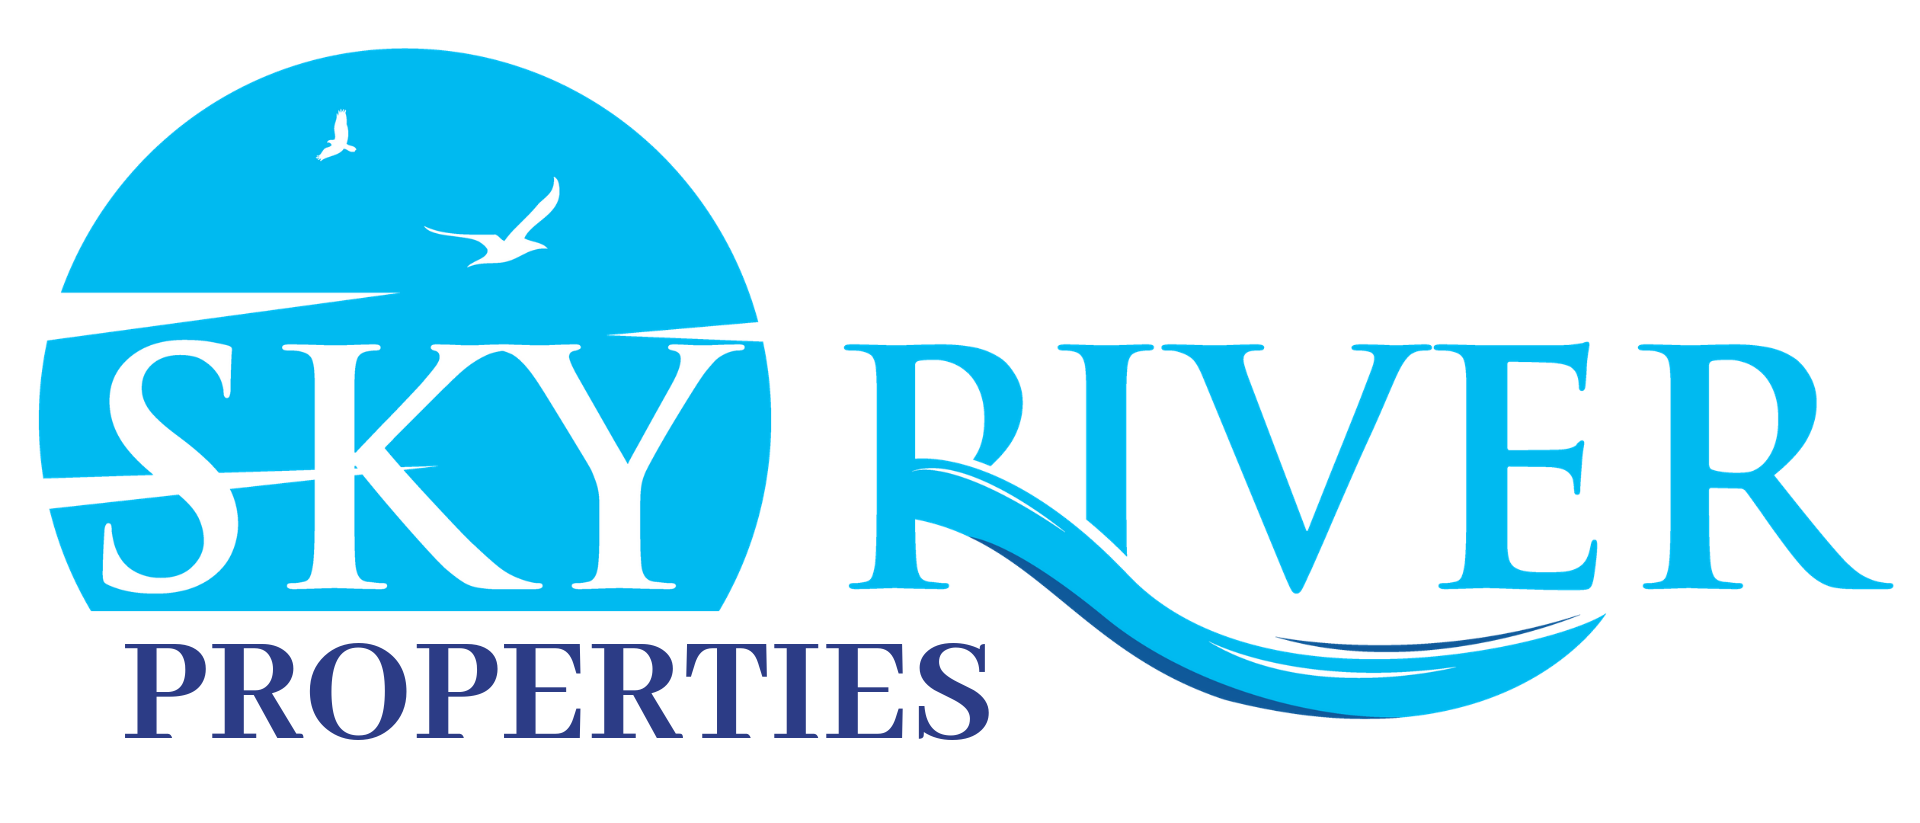 Sky River Properties, LLC logo